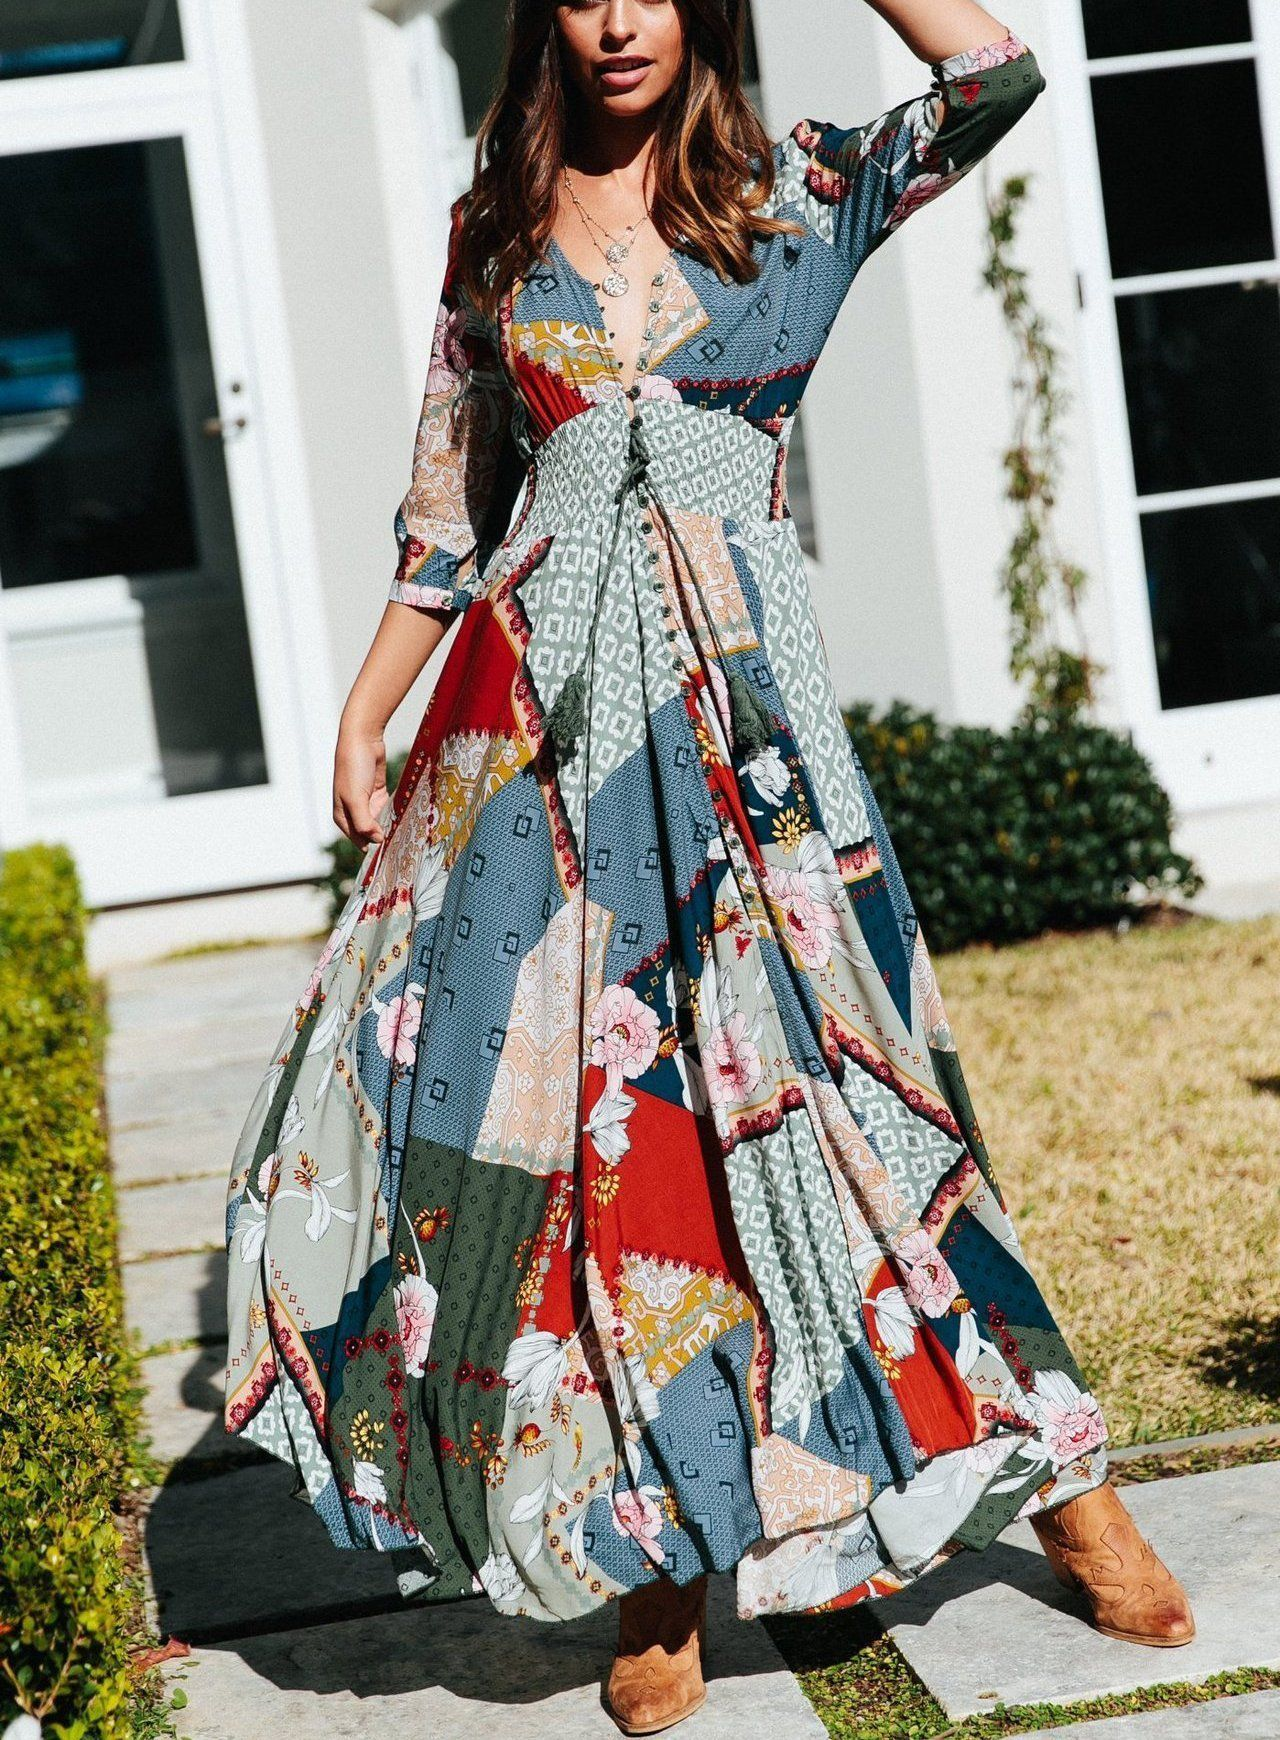 Casual Vacation Seaside Beach Bohemian Style V Neck Printing Maxi Dres Streettide Maxi Dress Boho Maxi Dress Printed Summer Dresses Summer Dresses For Women [ 1740 x 1280 Pixel ]